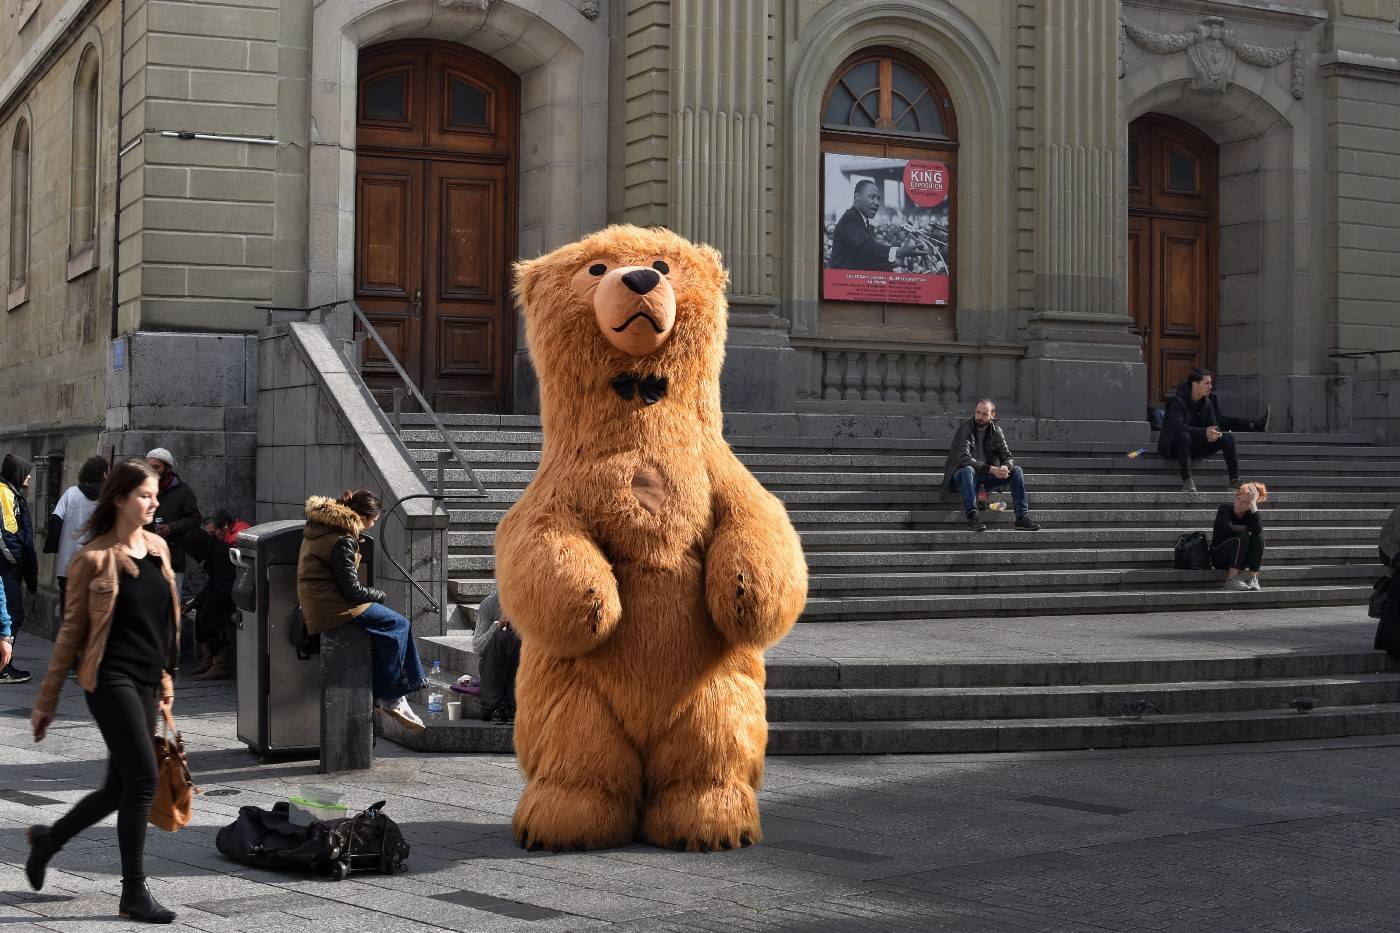 A bear mascot standing in front of a building is looking up, with people sitting on stairs in the background